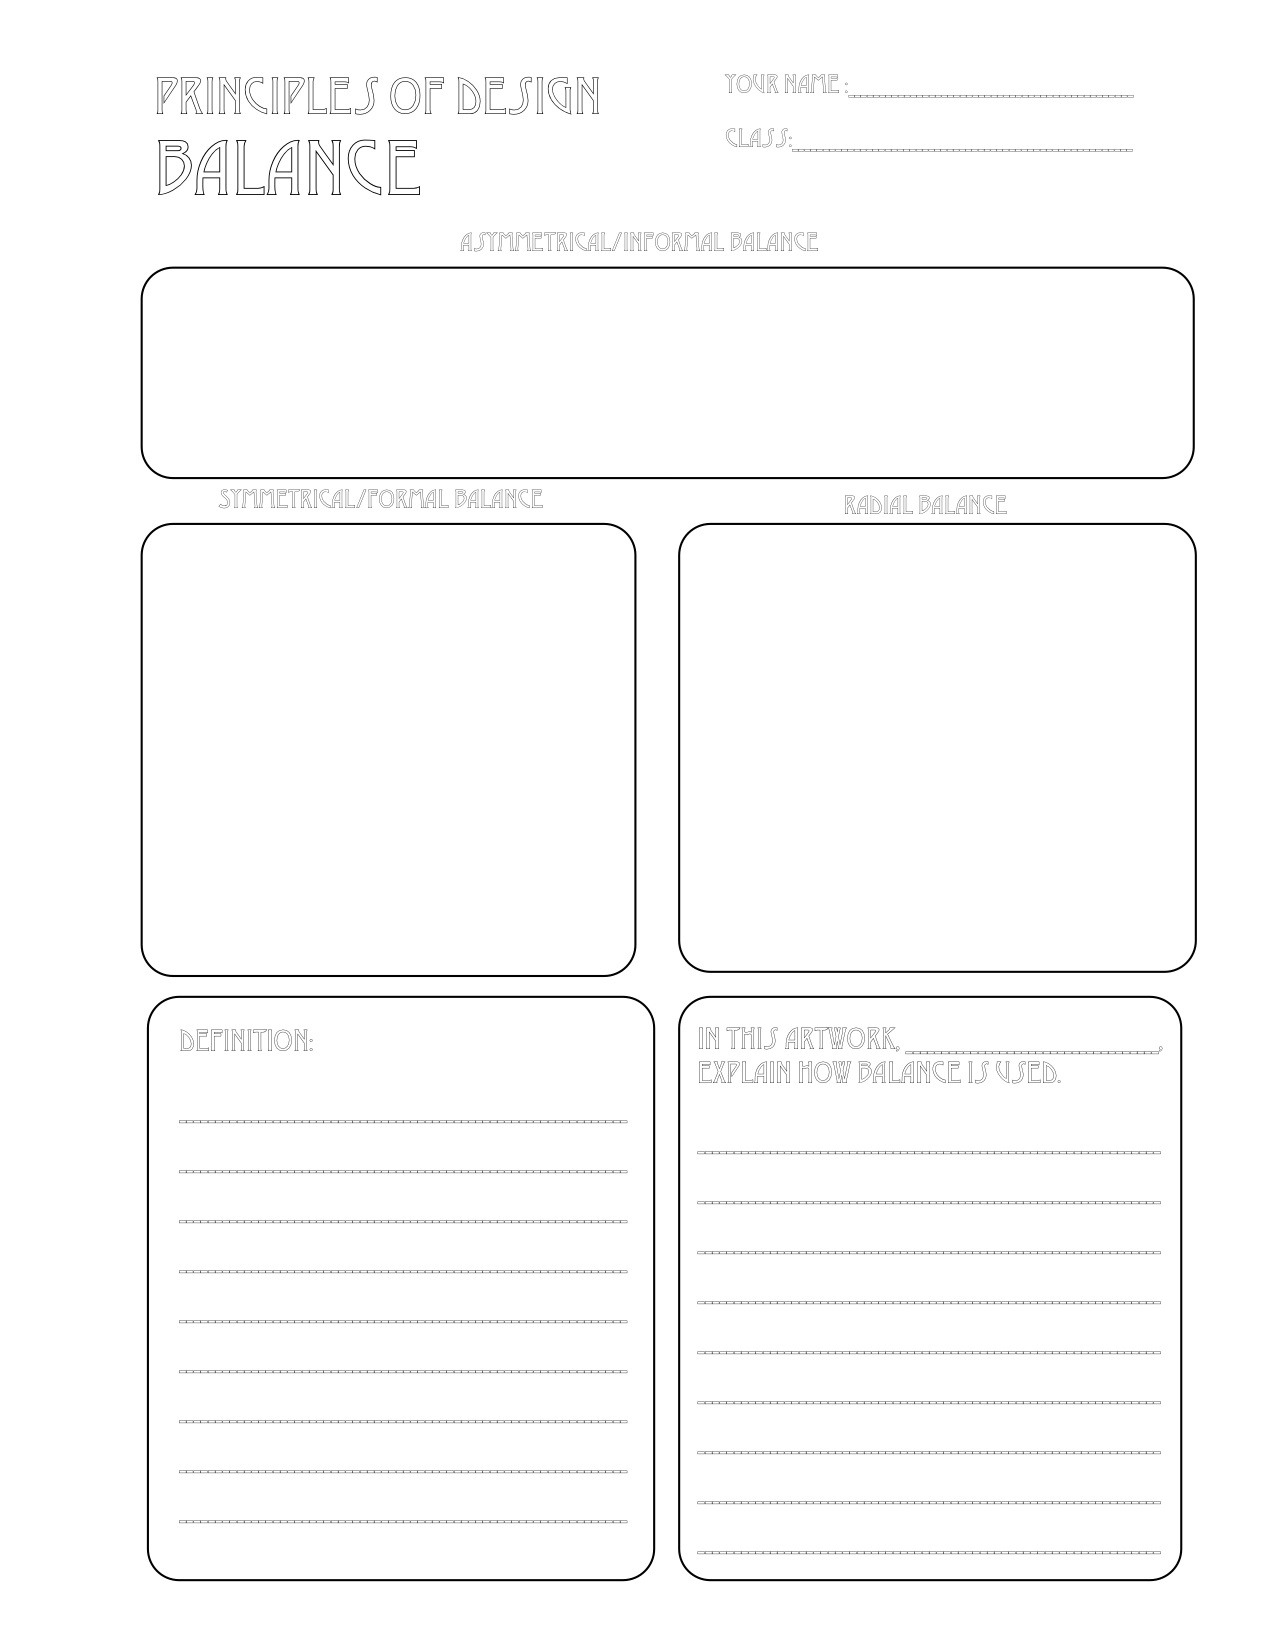 worksheet Elements And Principles Of Art Worksheet the smartteacher resource balance handout worksheet for principles of design balance